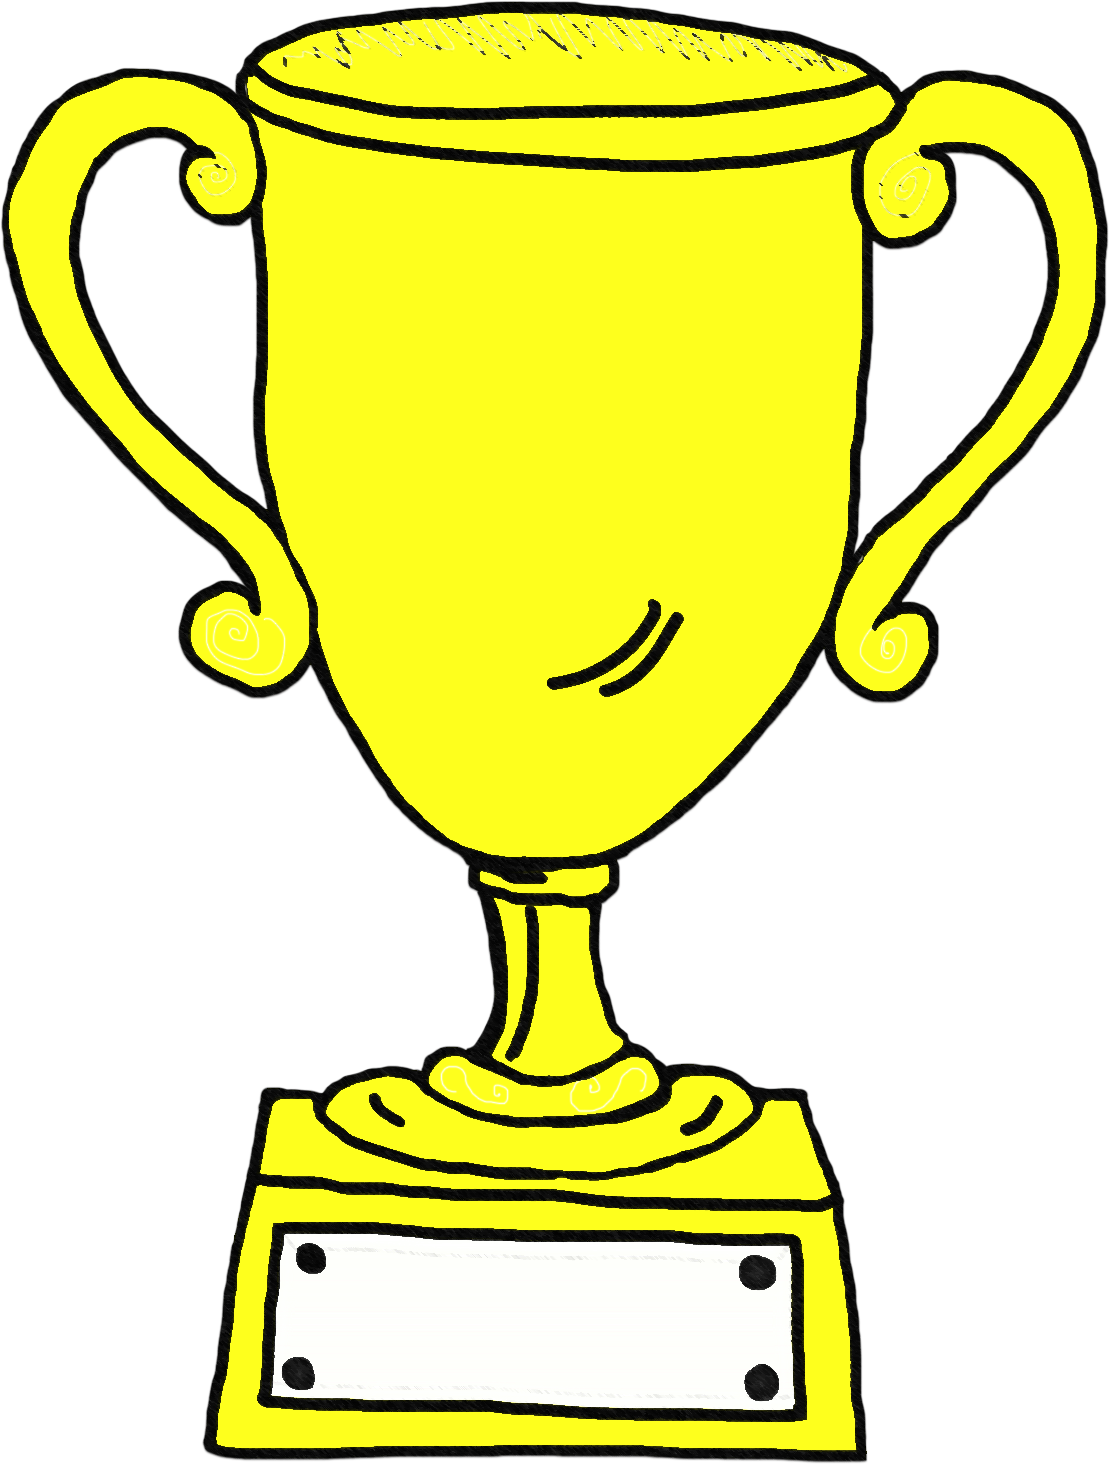 Number 1 trophy clipart graphic free stock Clipart trophy - ClipartFest graphic free stock